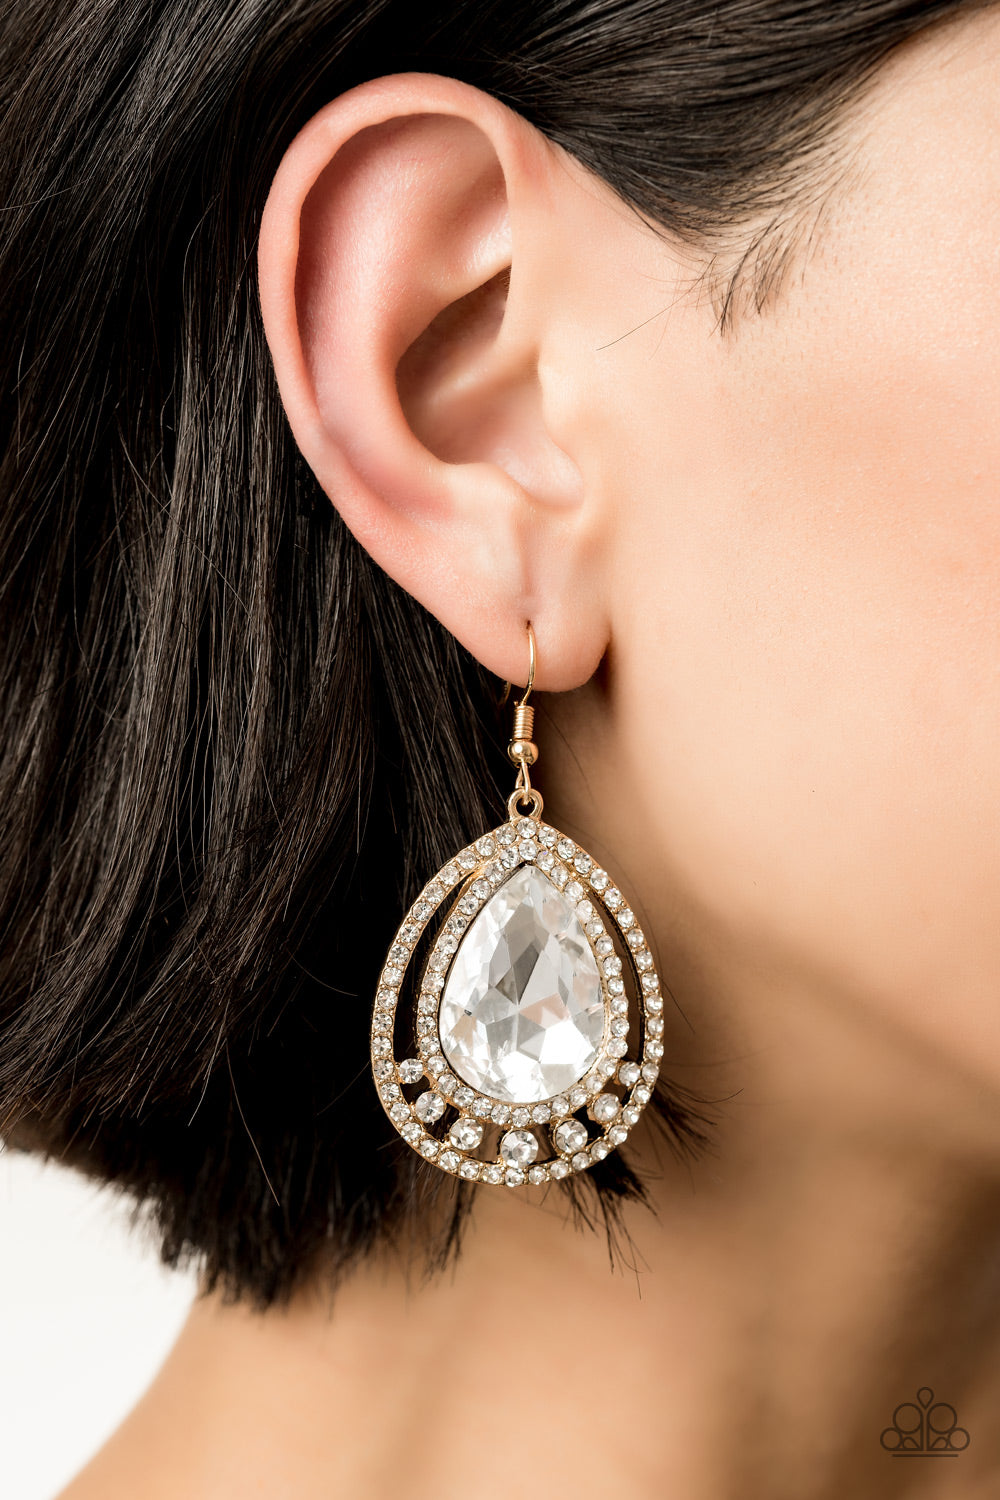 Paparazzi - All Rise For Her Majesty Earrings - Classy Jewels by Linda